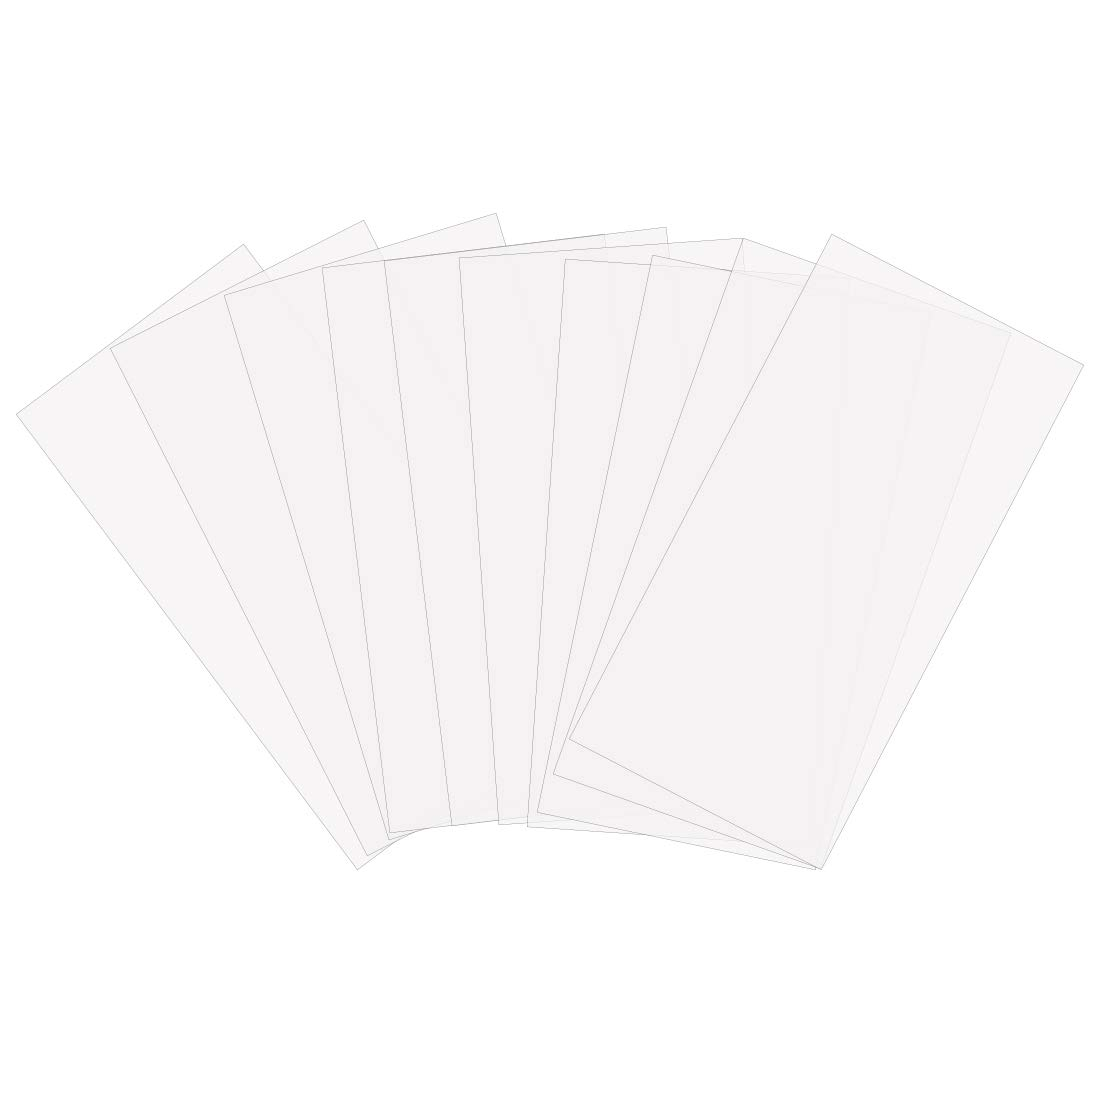 JINSEY Make Your Own Stencil - 10 Pack 6 Mil 12 x 24 inch Blank Stencil Sheets - Ideal Use Compatible Cricut & Silhouette Machines (Mylar Material) Stenci-12-24